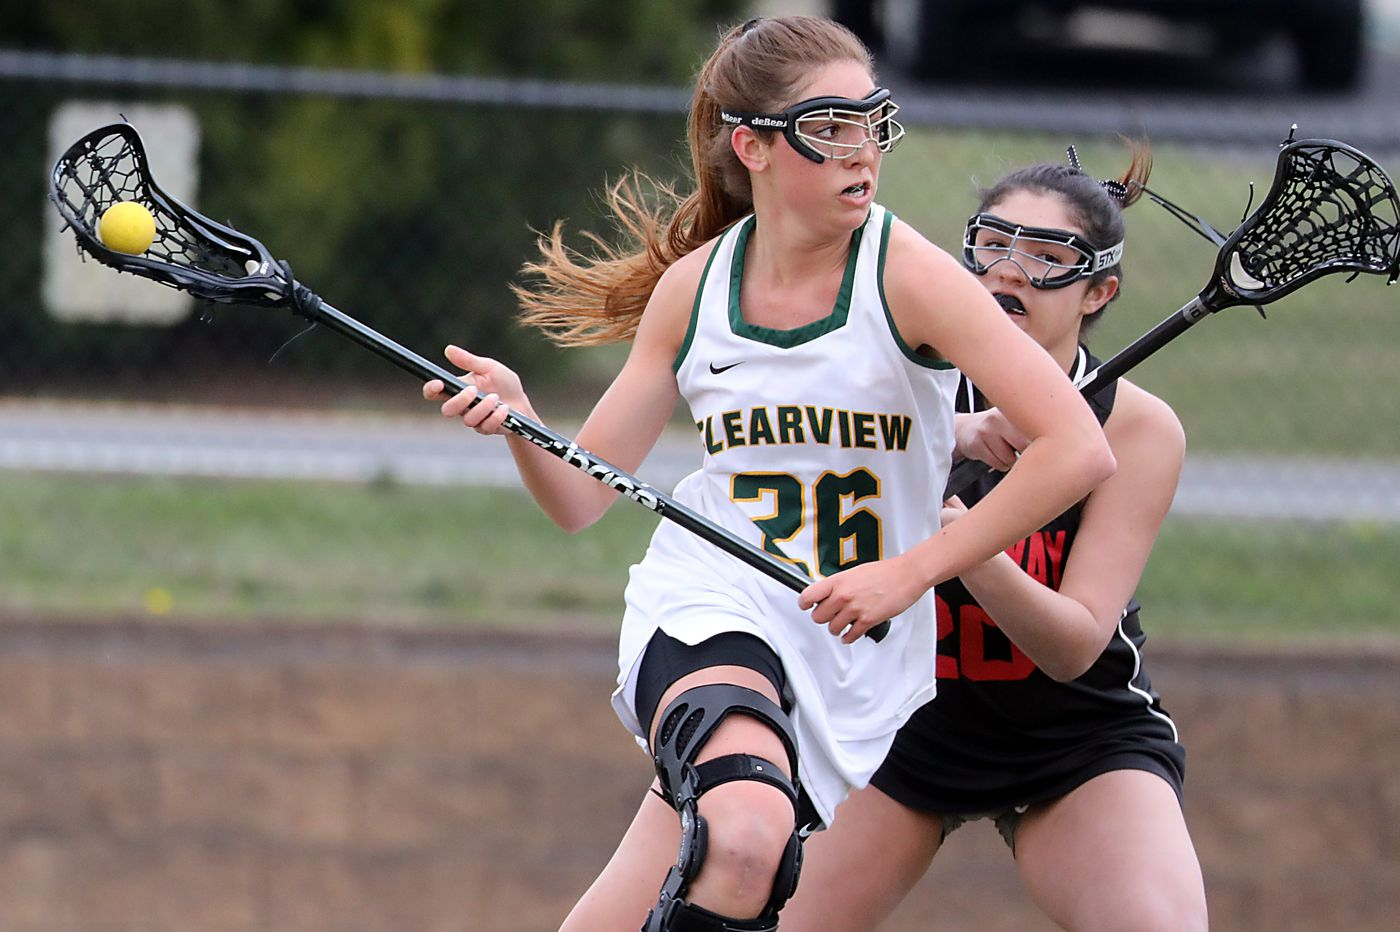 Clearview falls short in Group 4 girls' lacrosse state championship